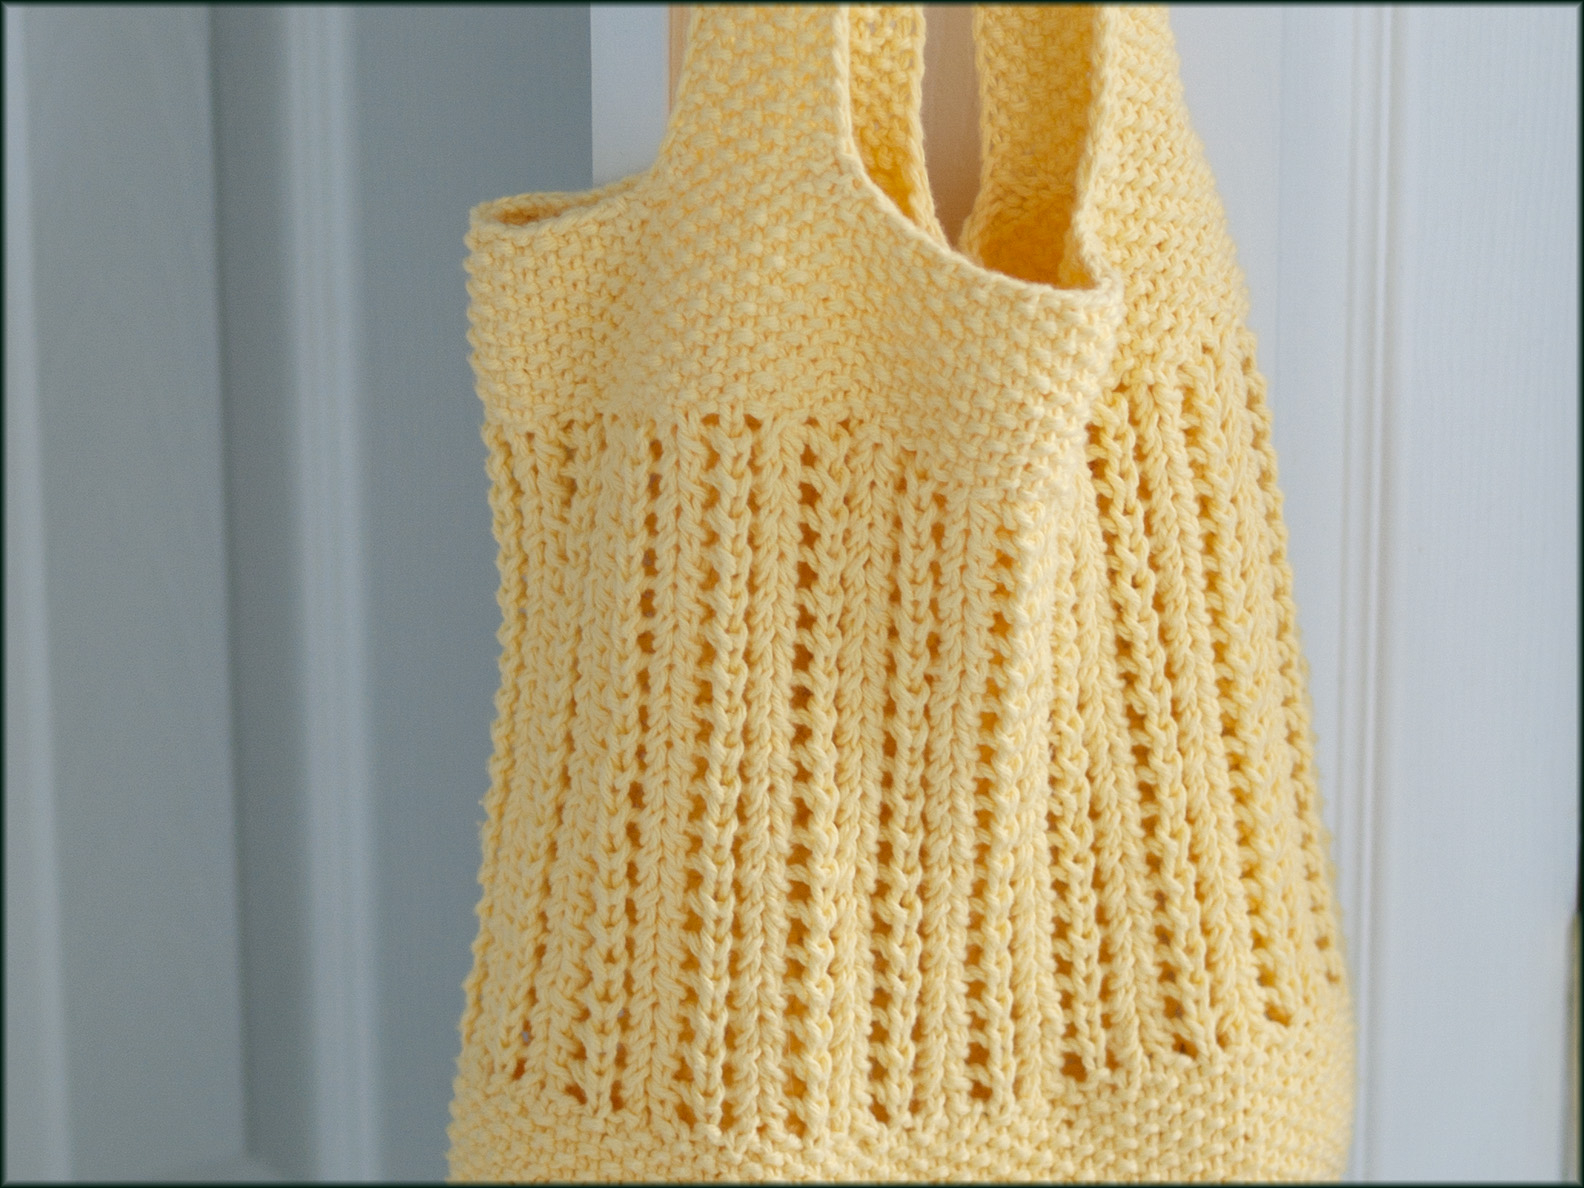 Knitted Bag Pattern Wyndlestraw Designs Market Bag Knit Along 7 Handles And Finishing